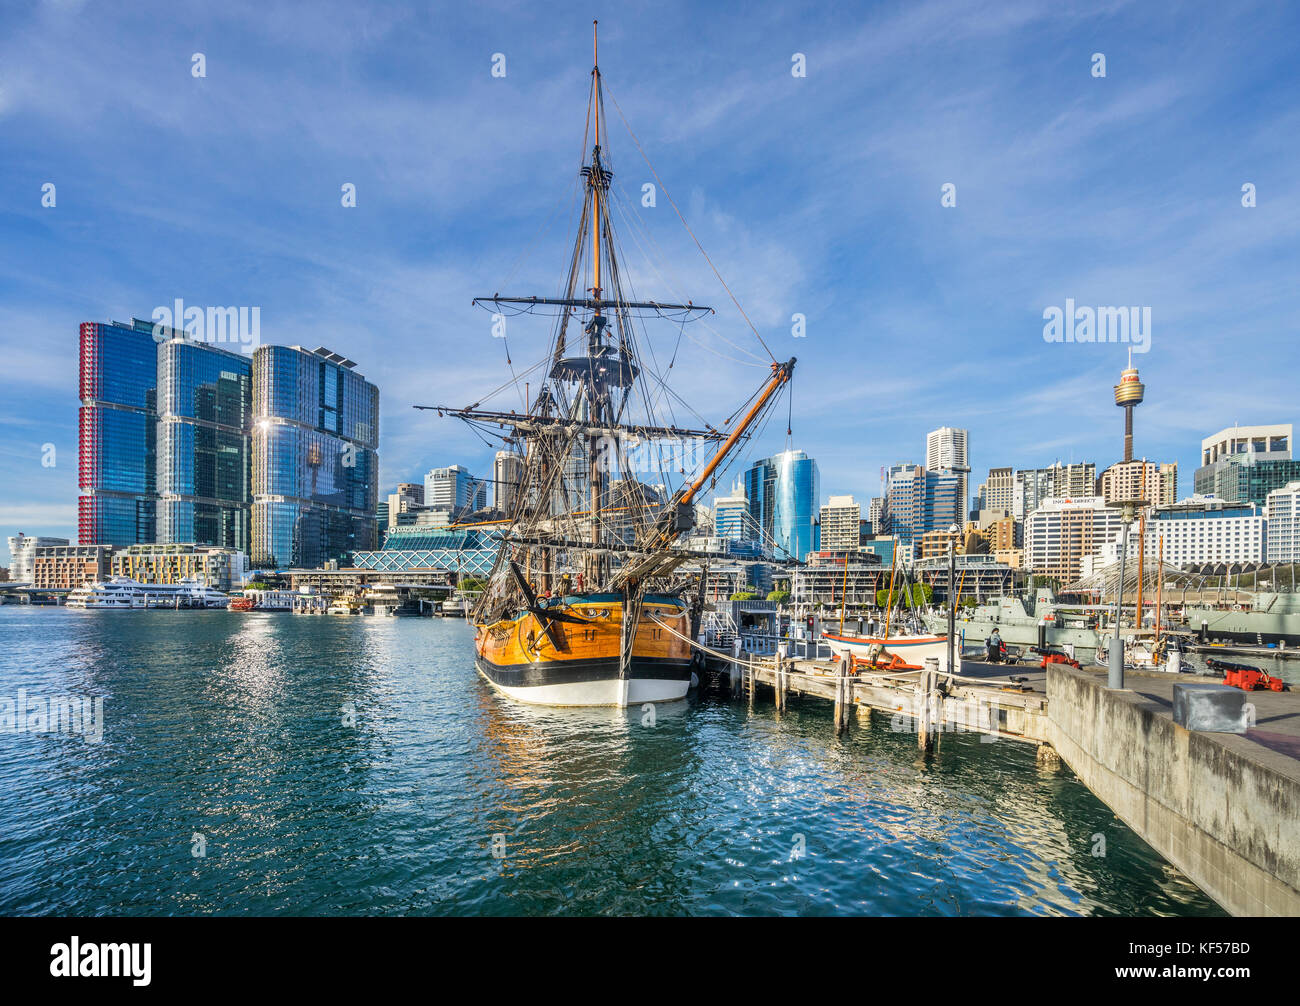 Australia, New South Wales, Sydney, Darling Harbour, Australian National Maritime Museumand the HMB Endeavor replica - Stock Image